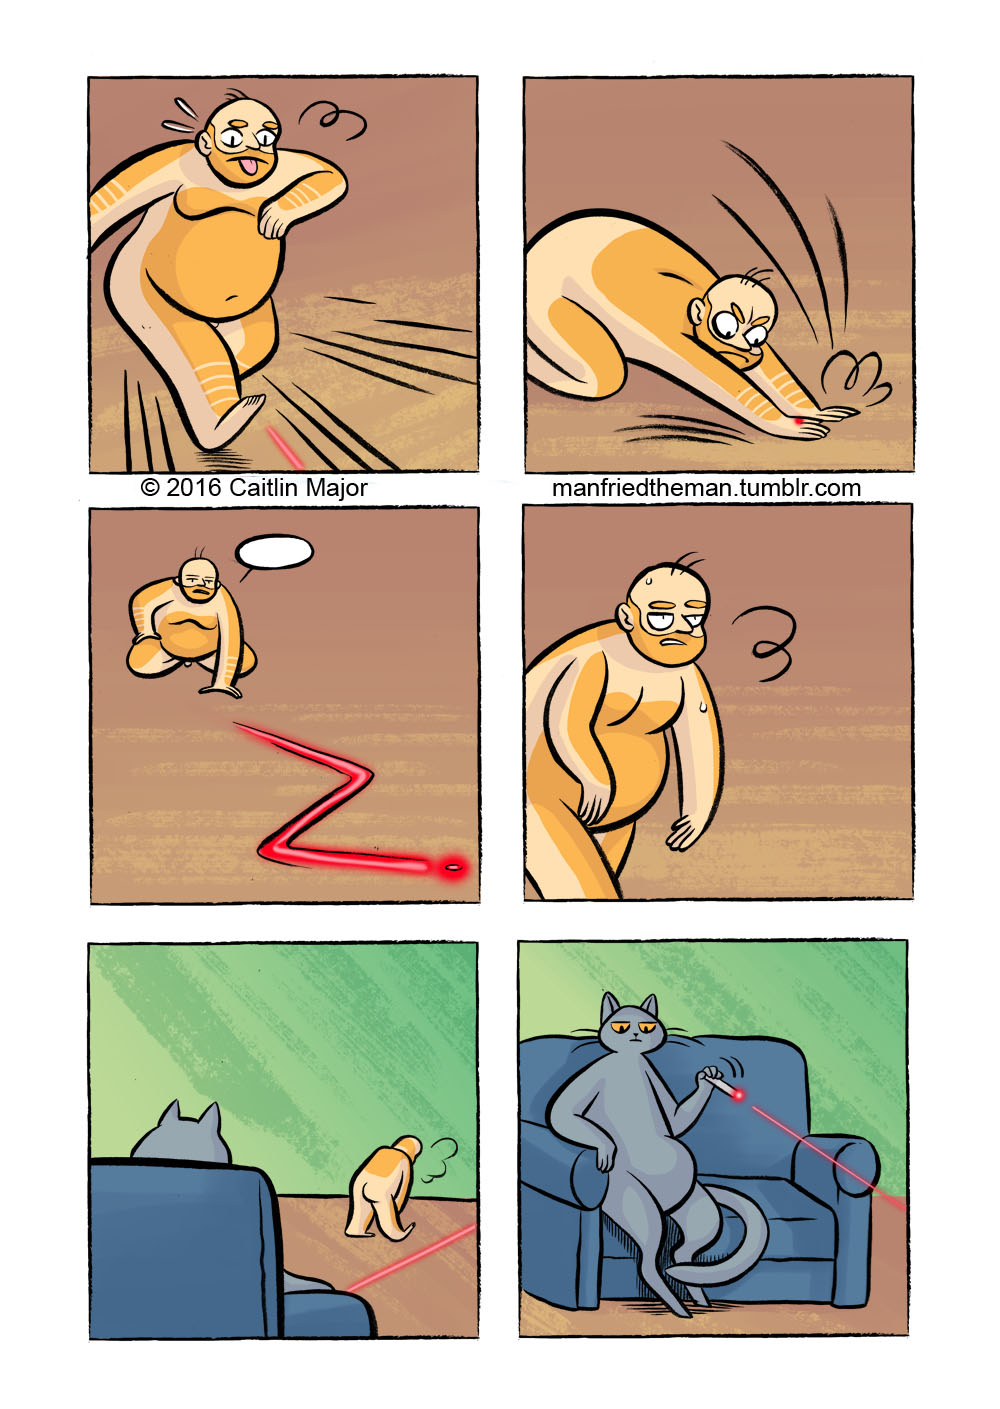 Manfried chases a laser pointer